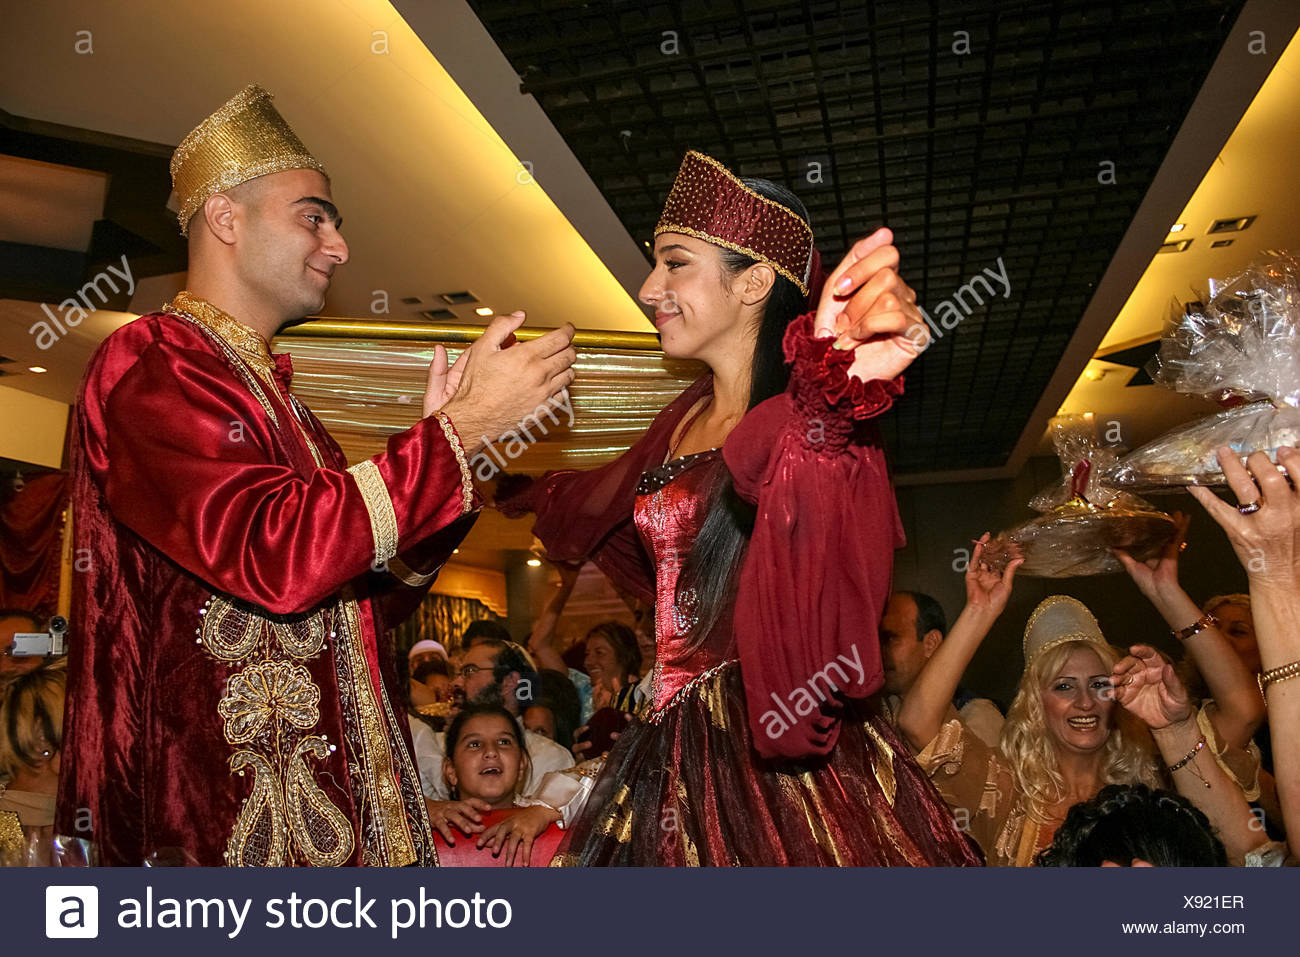 The bride and groom to be, at a Jewish Moroccan, henna ceremony The Hina, also Henna, ceremony proceeds the wedding day. In this festive ceremony, nat Stock Photo